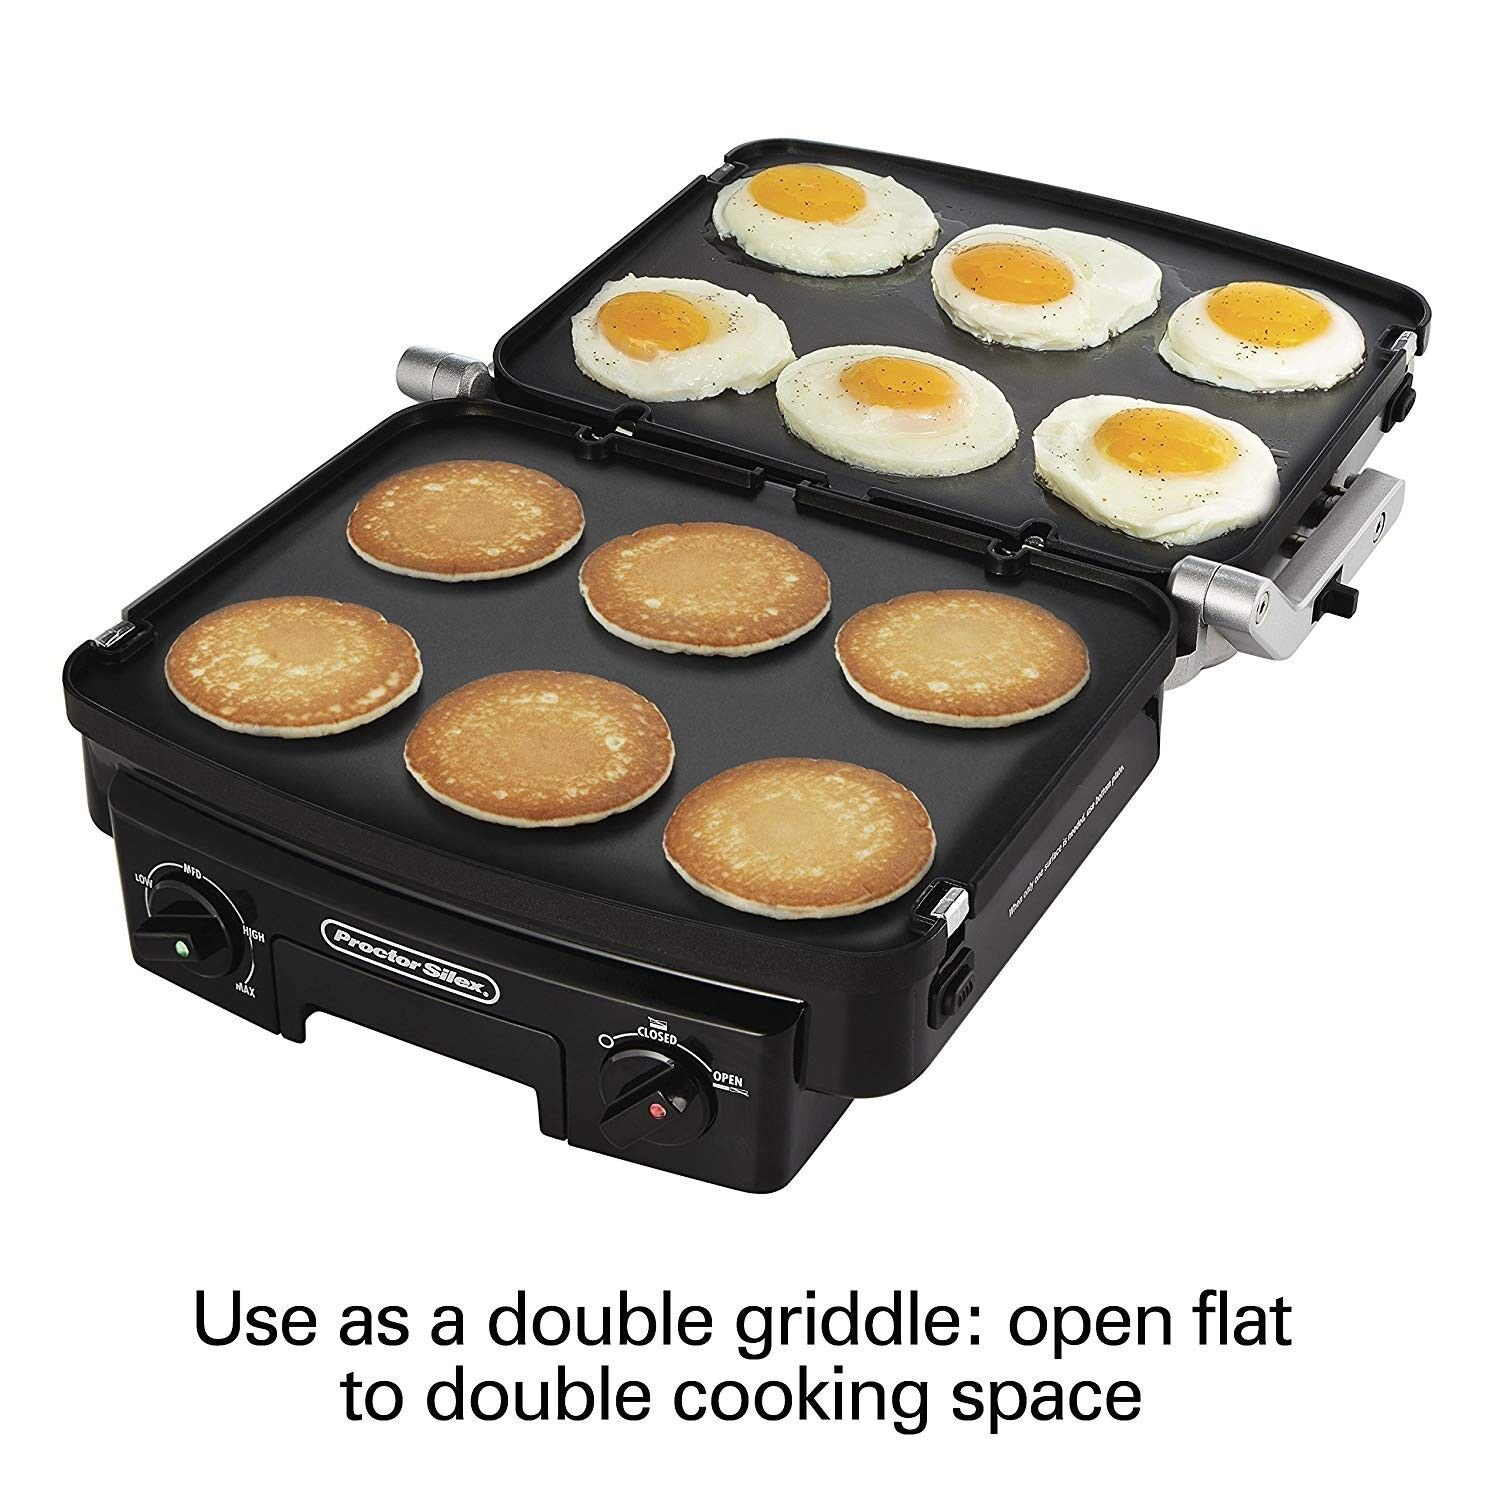 Proctor Silex 5-in - 1 Indoor Countertop Grill, Griddle & Pa